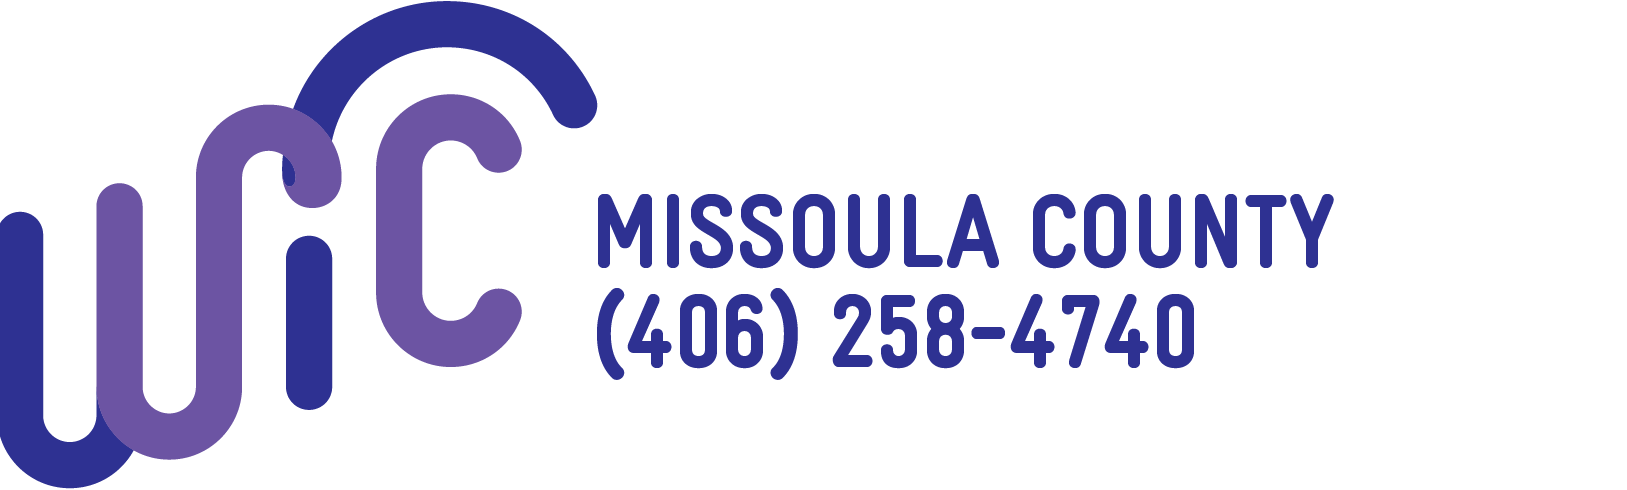 WIC Montana Local Logos Violet_Missoula County (406) 258-4740